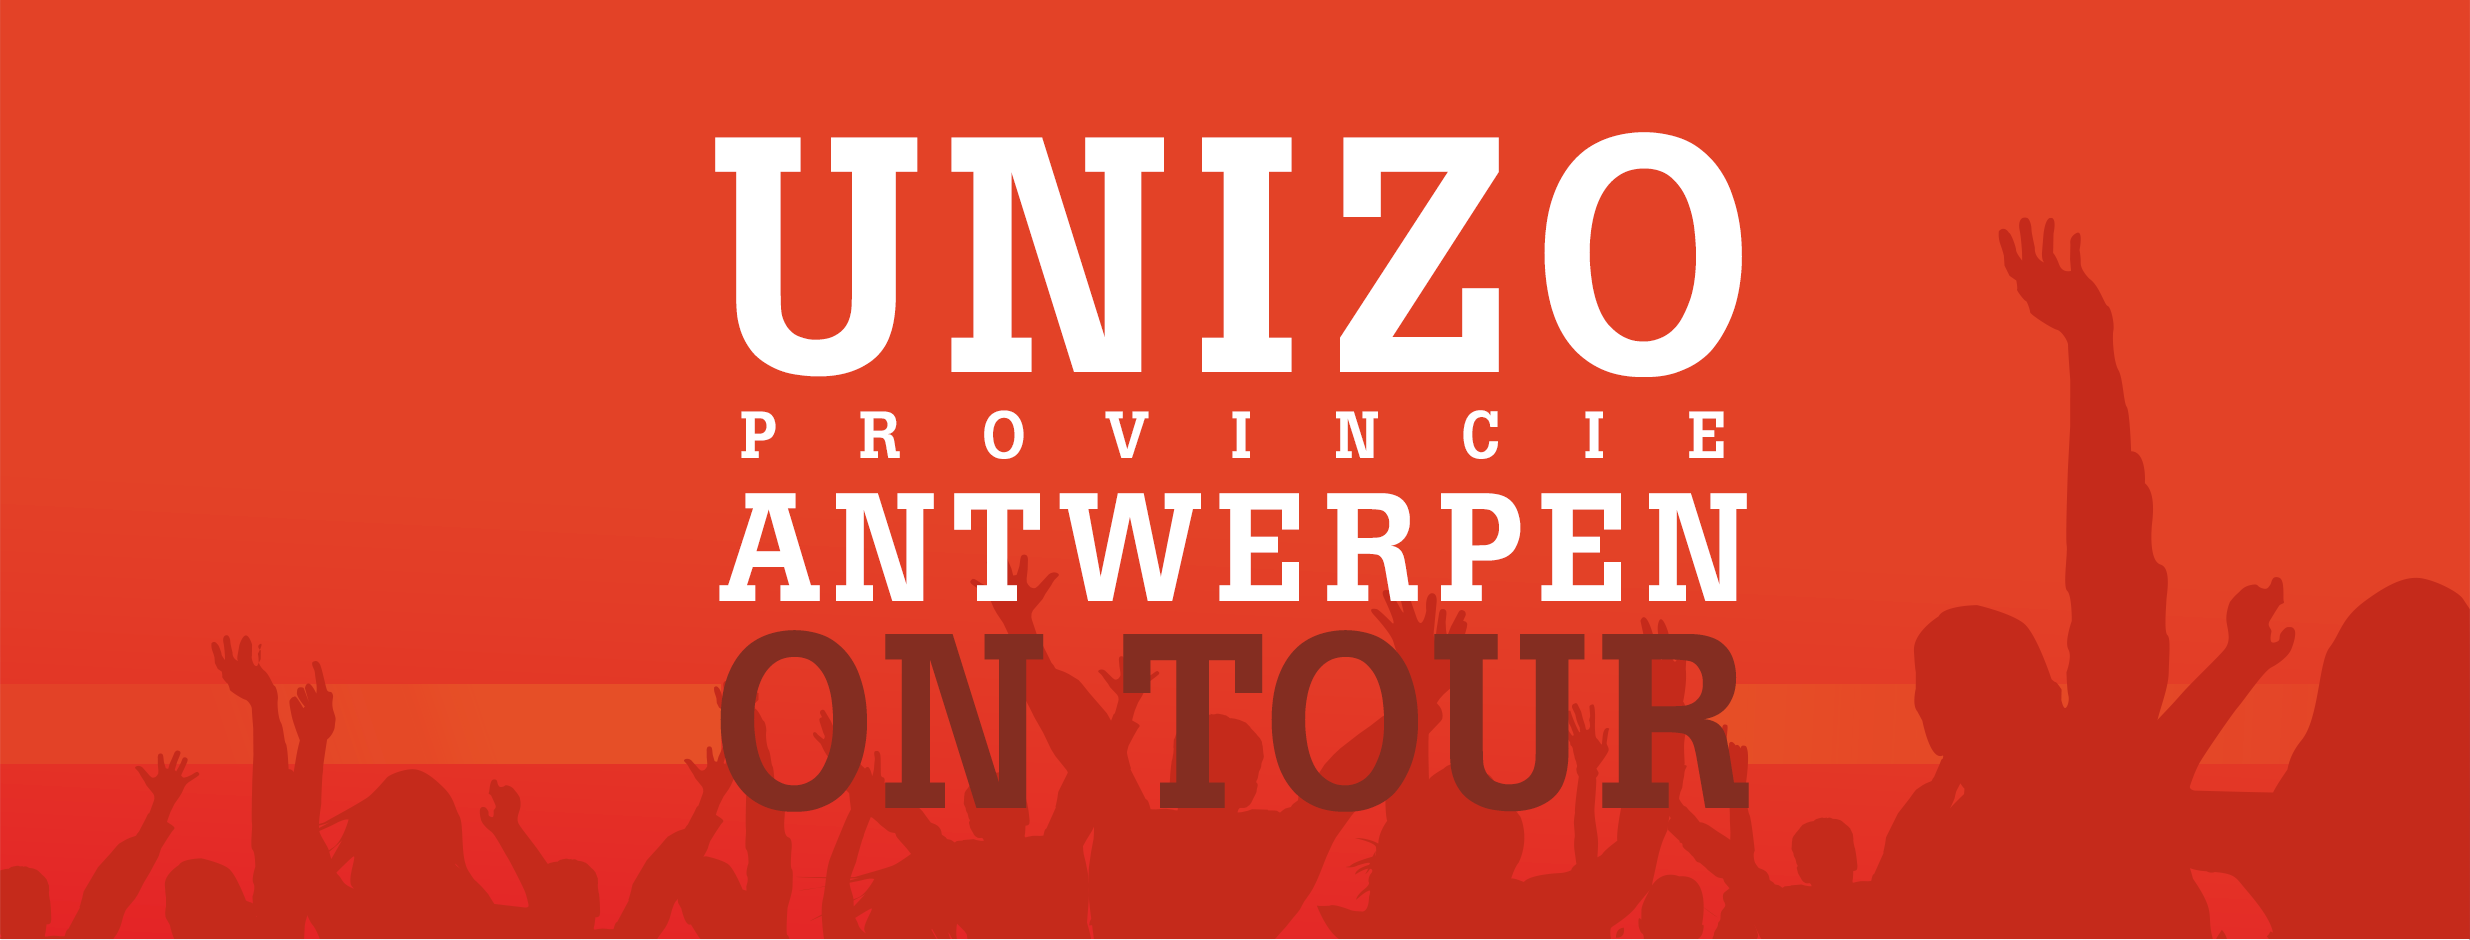 UNIZO on tour